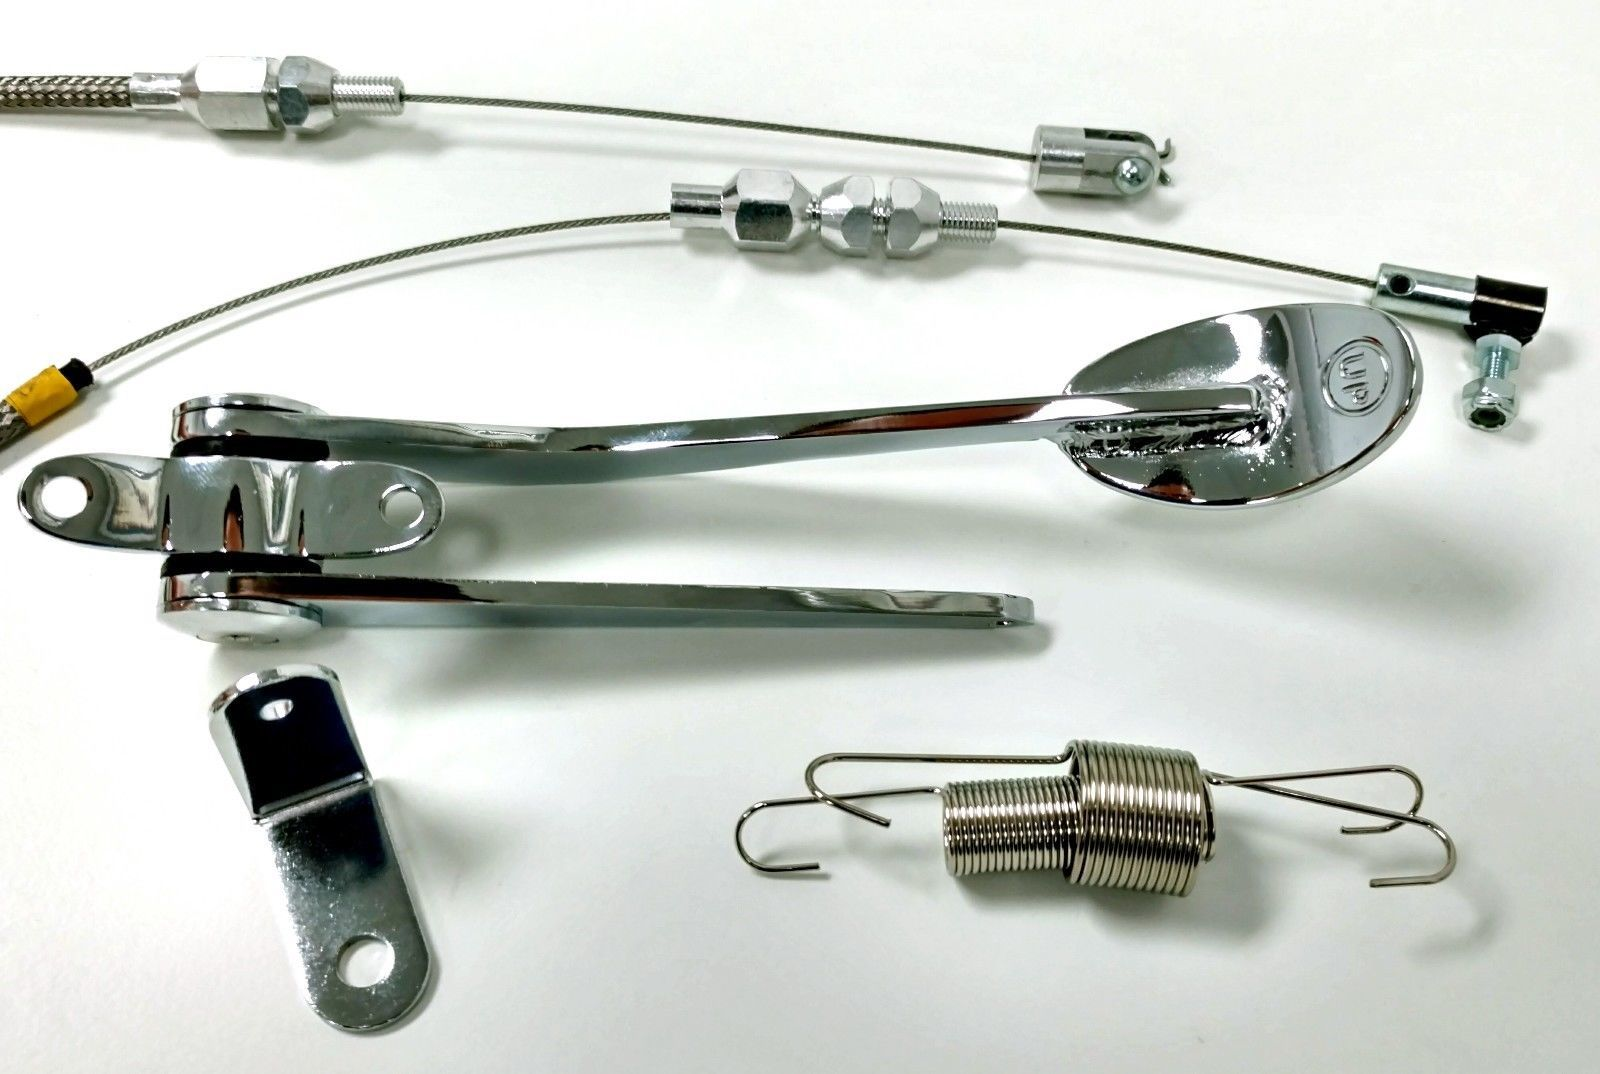 Hot Rod Cable : Hot rod chrome spoon throttle pedal kit w quot ss braided